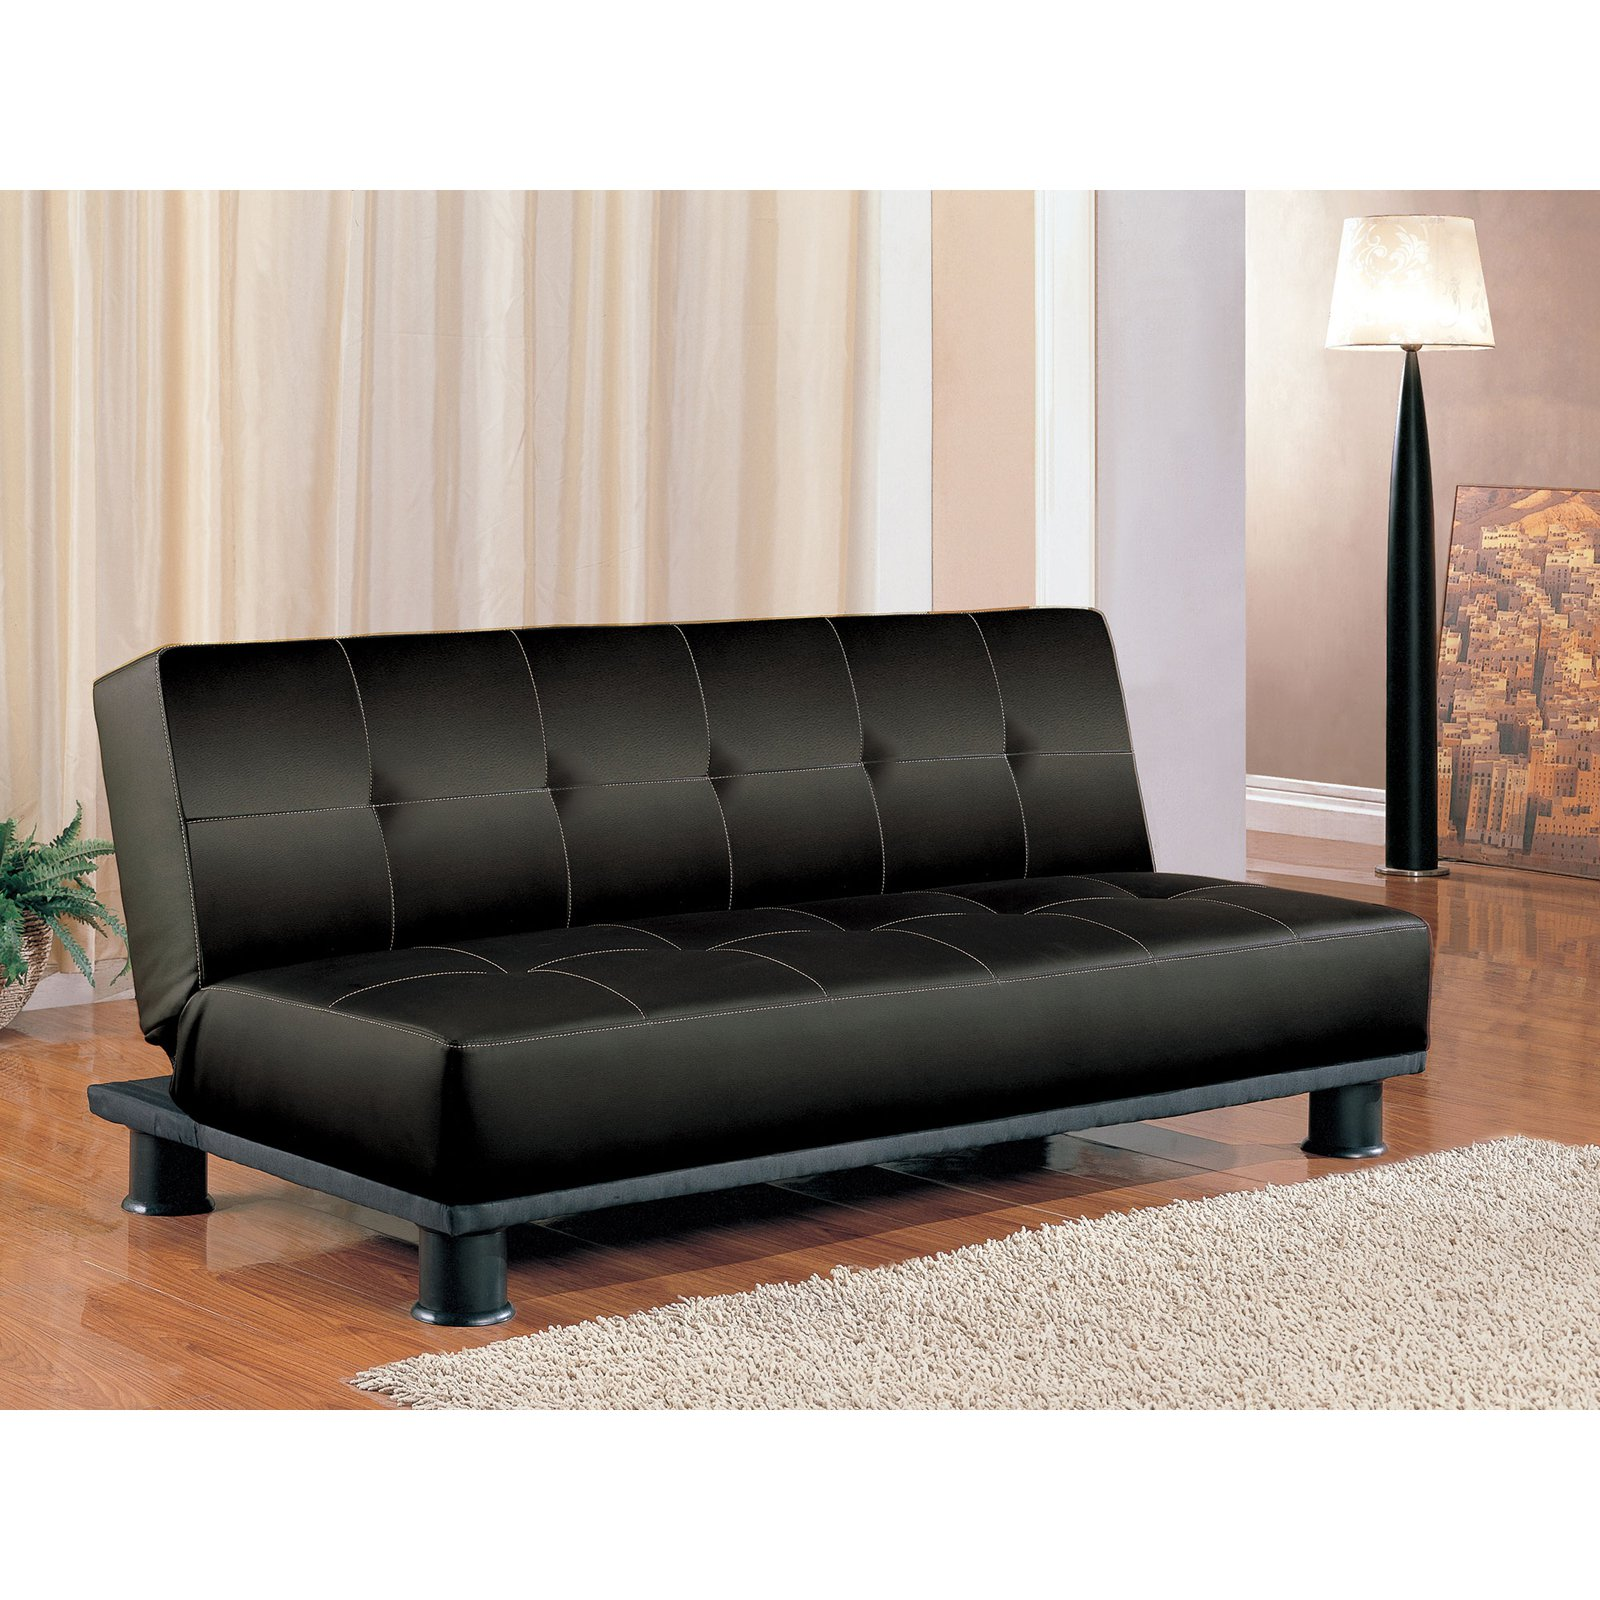 Coaster Company Transitional Sofa Bed, Black Leatherette